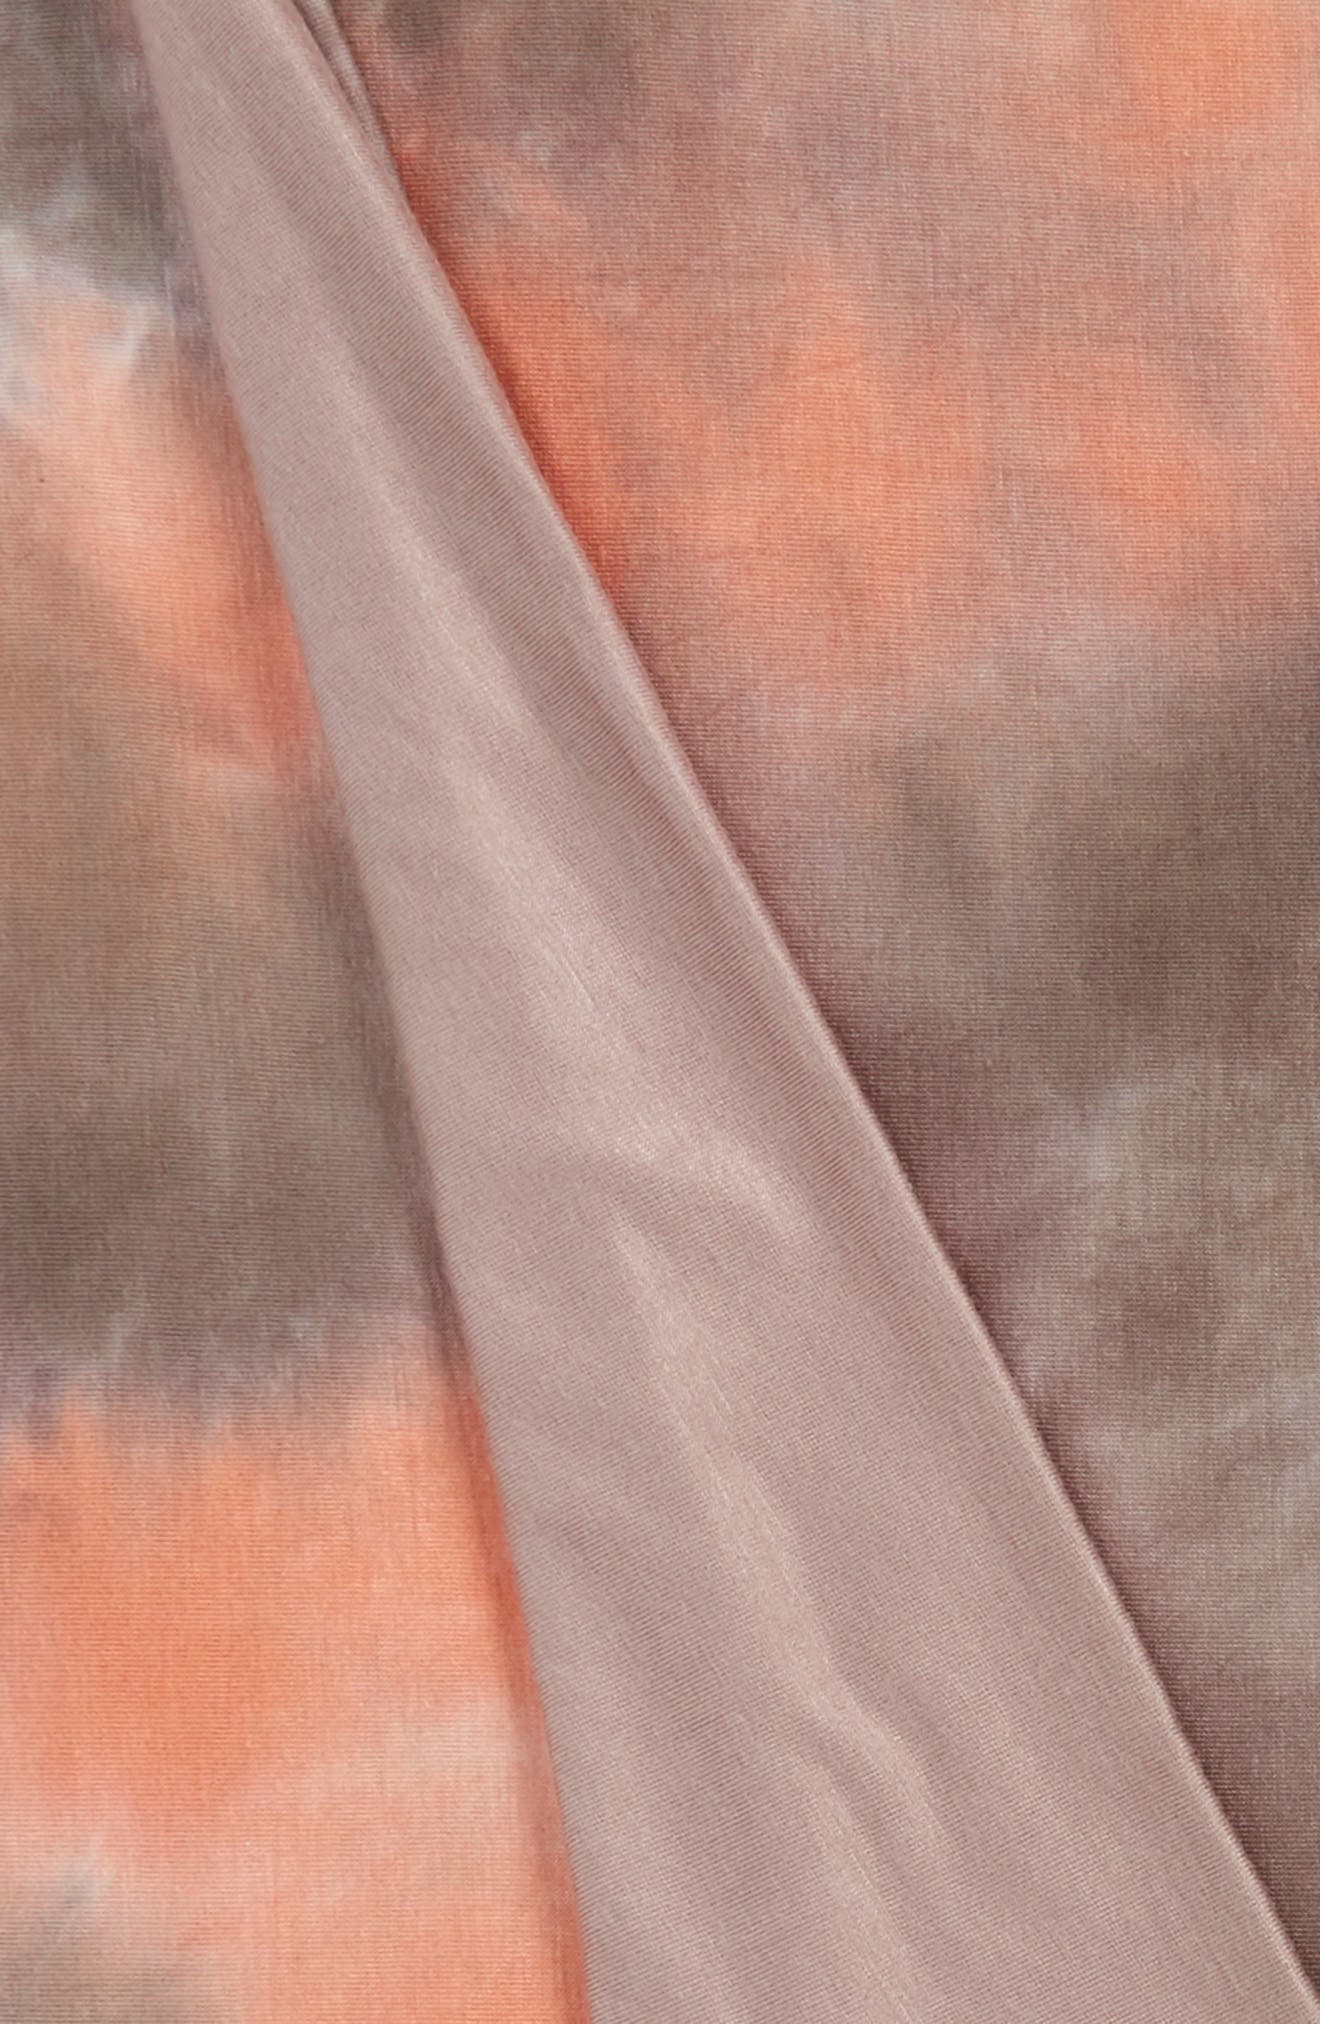 September Marbled Jersey Throw,                             Alternate thumbnail 2, color,                             950